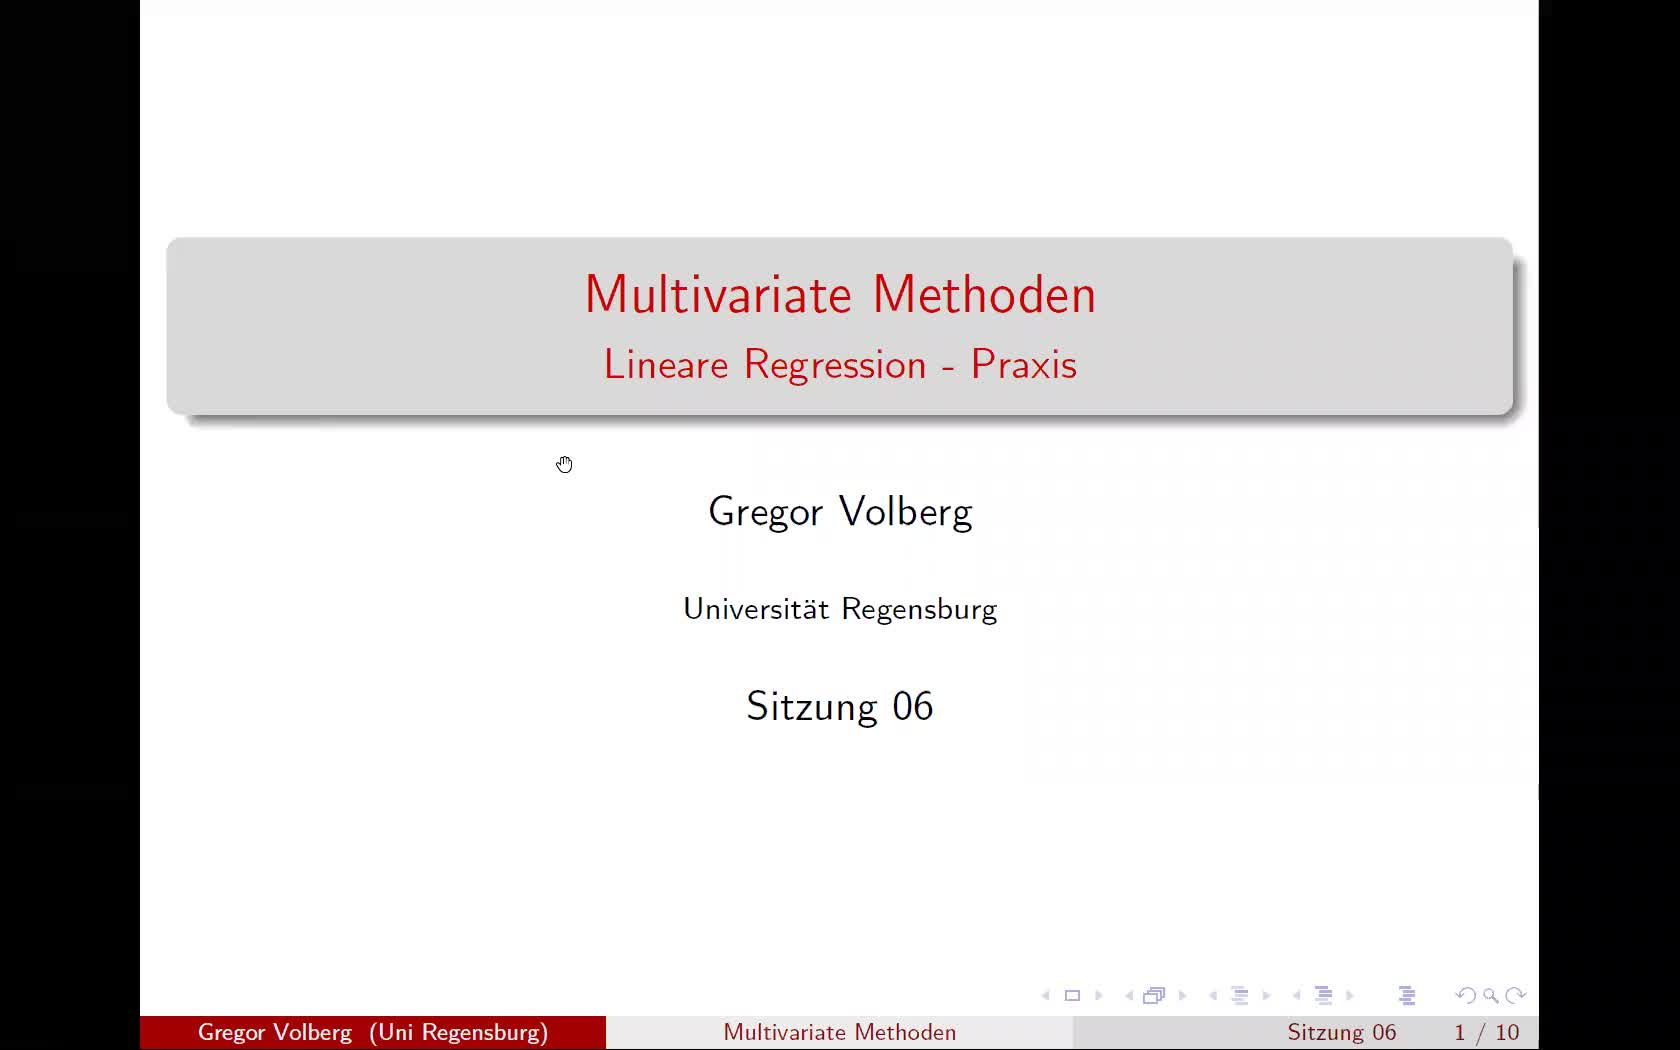 Multivariate Methoden: Lineare Regression - Praxis